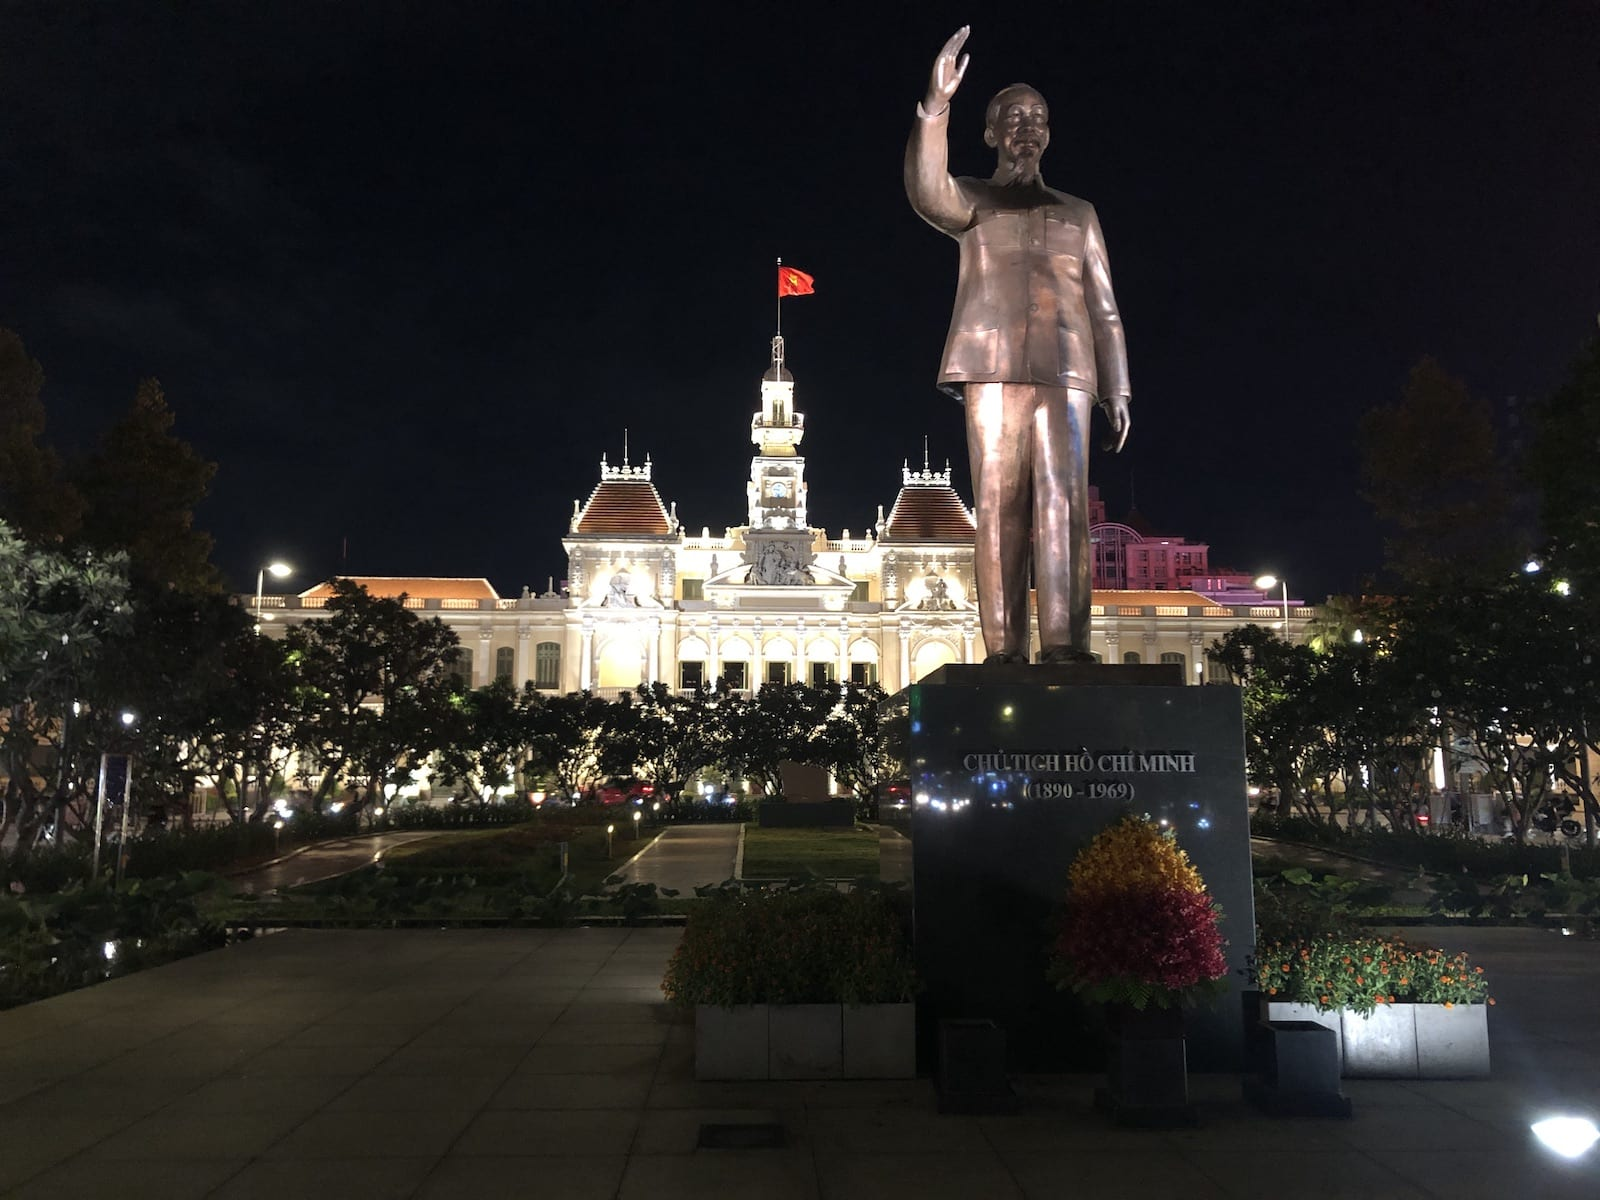 Image of the Ho Chi Minh state on Nguyen Hue Street in HCMC, Vietnam